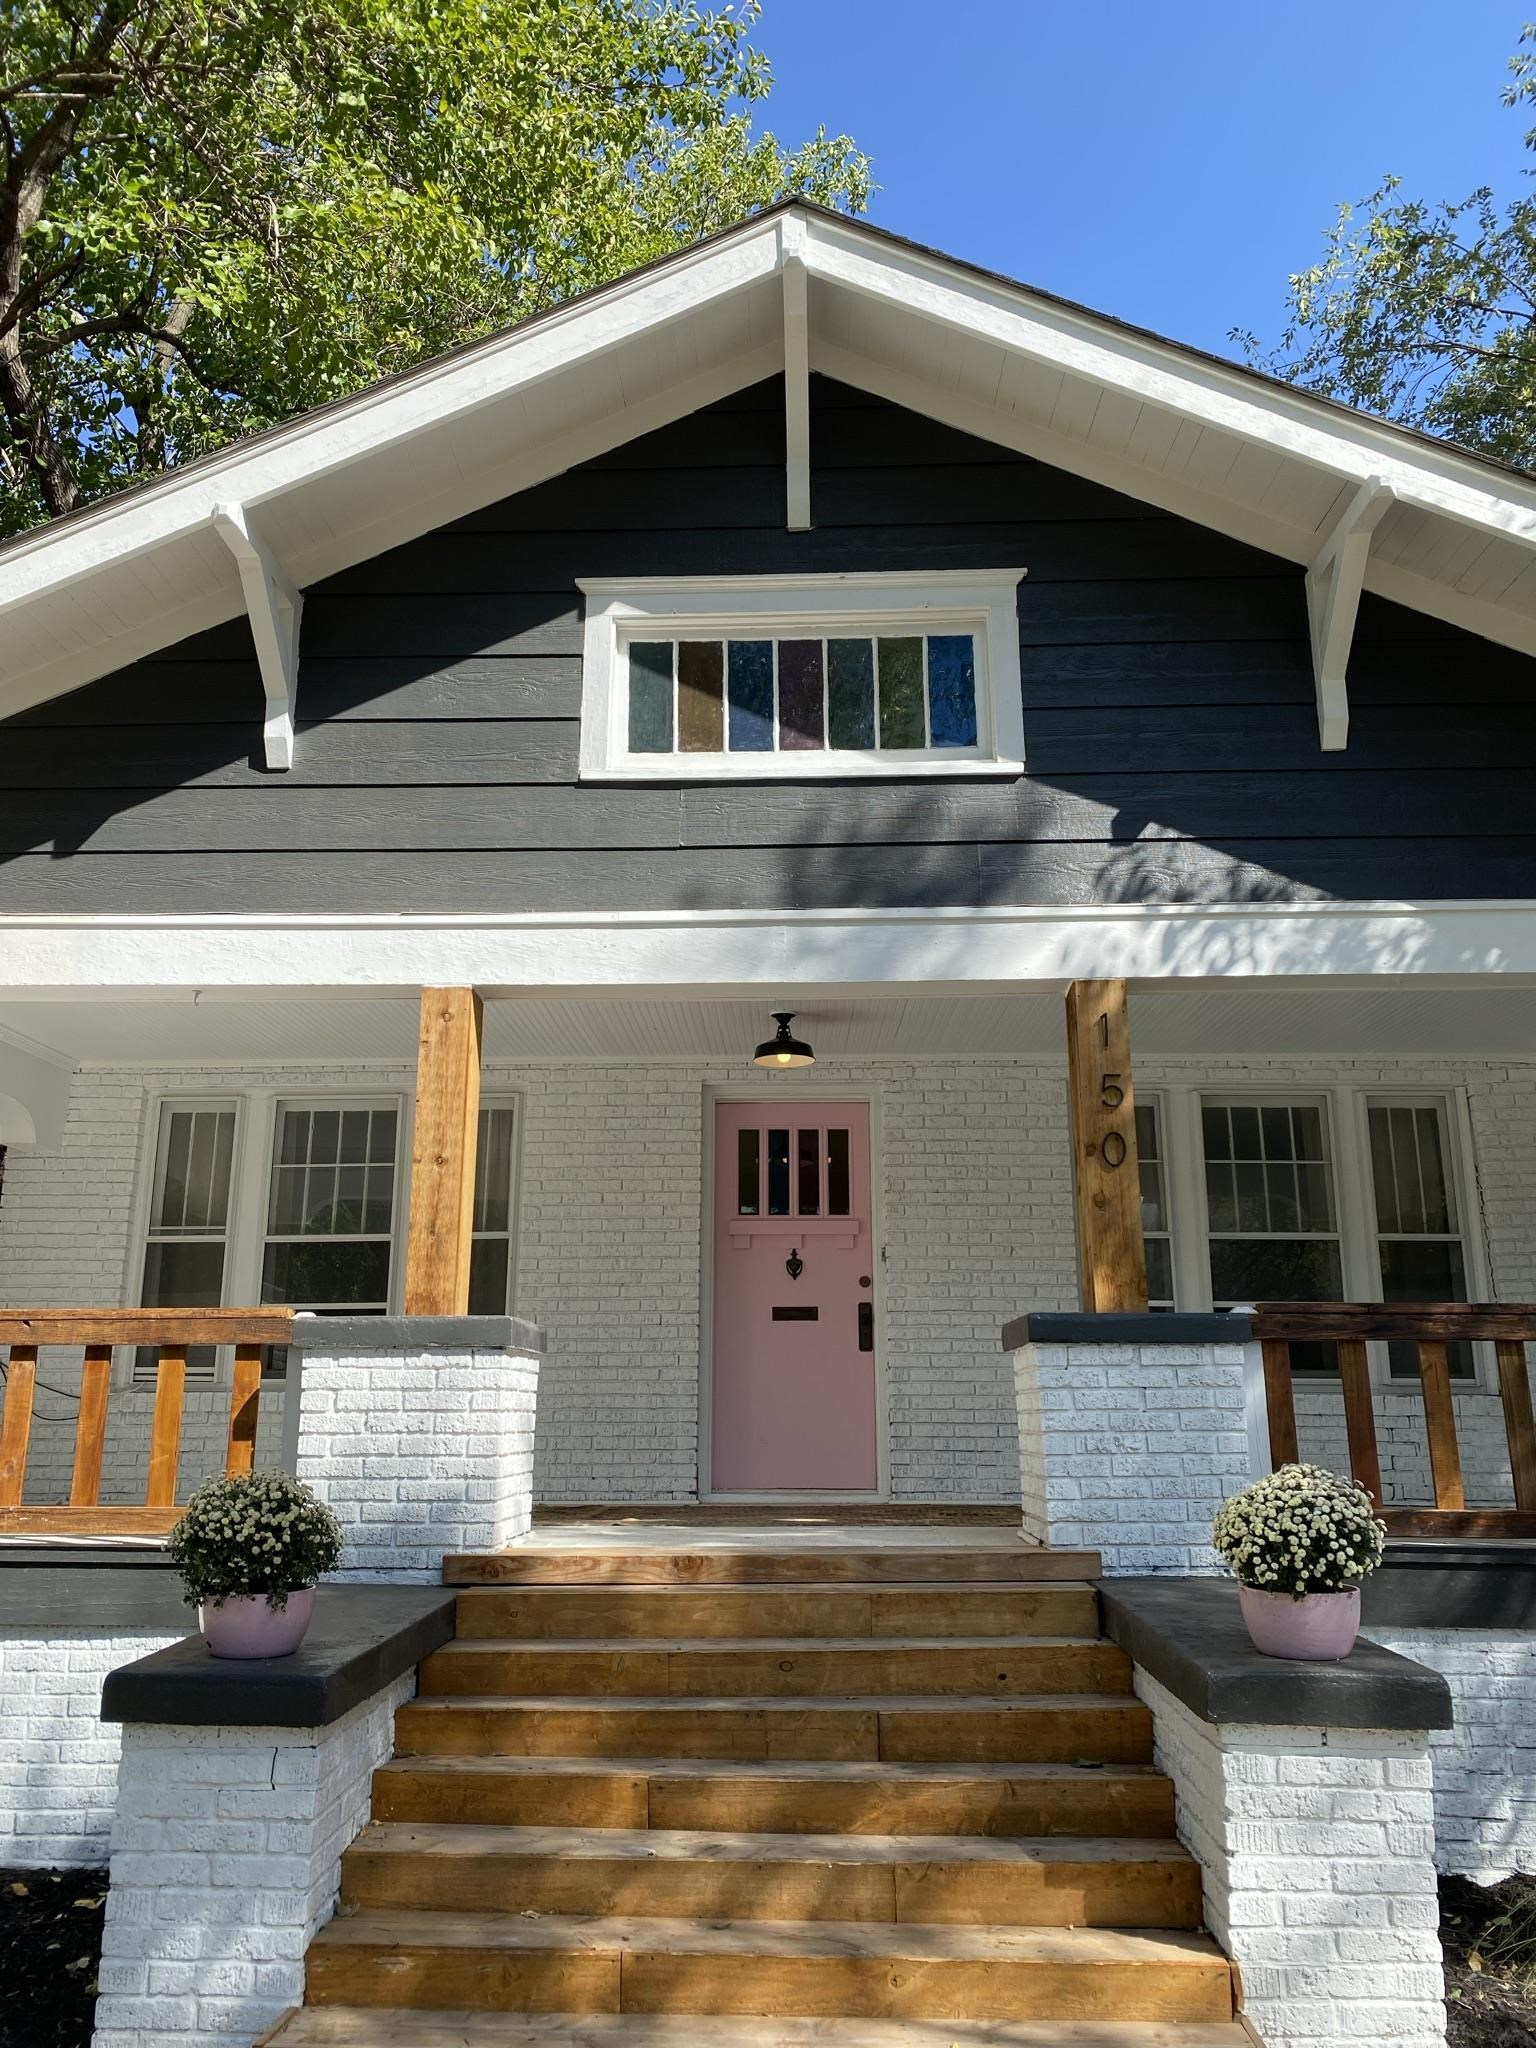 1920's 3 bed 1 bath bungalow on the edge of College Hill. Within walking distance to many shops, bar